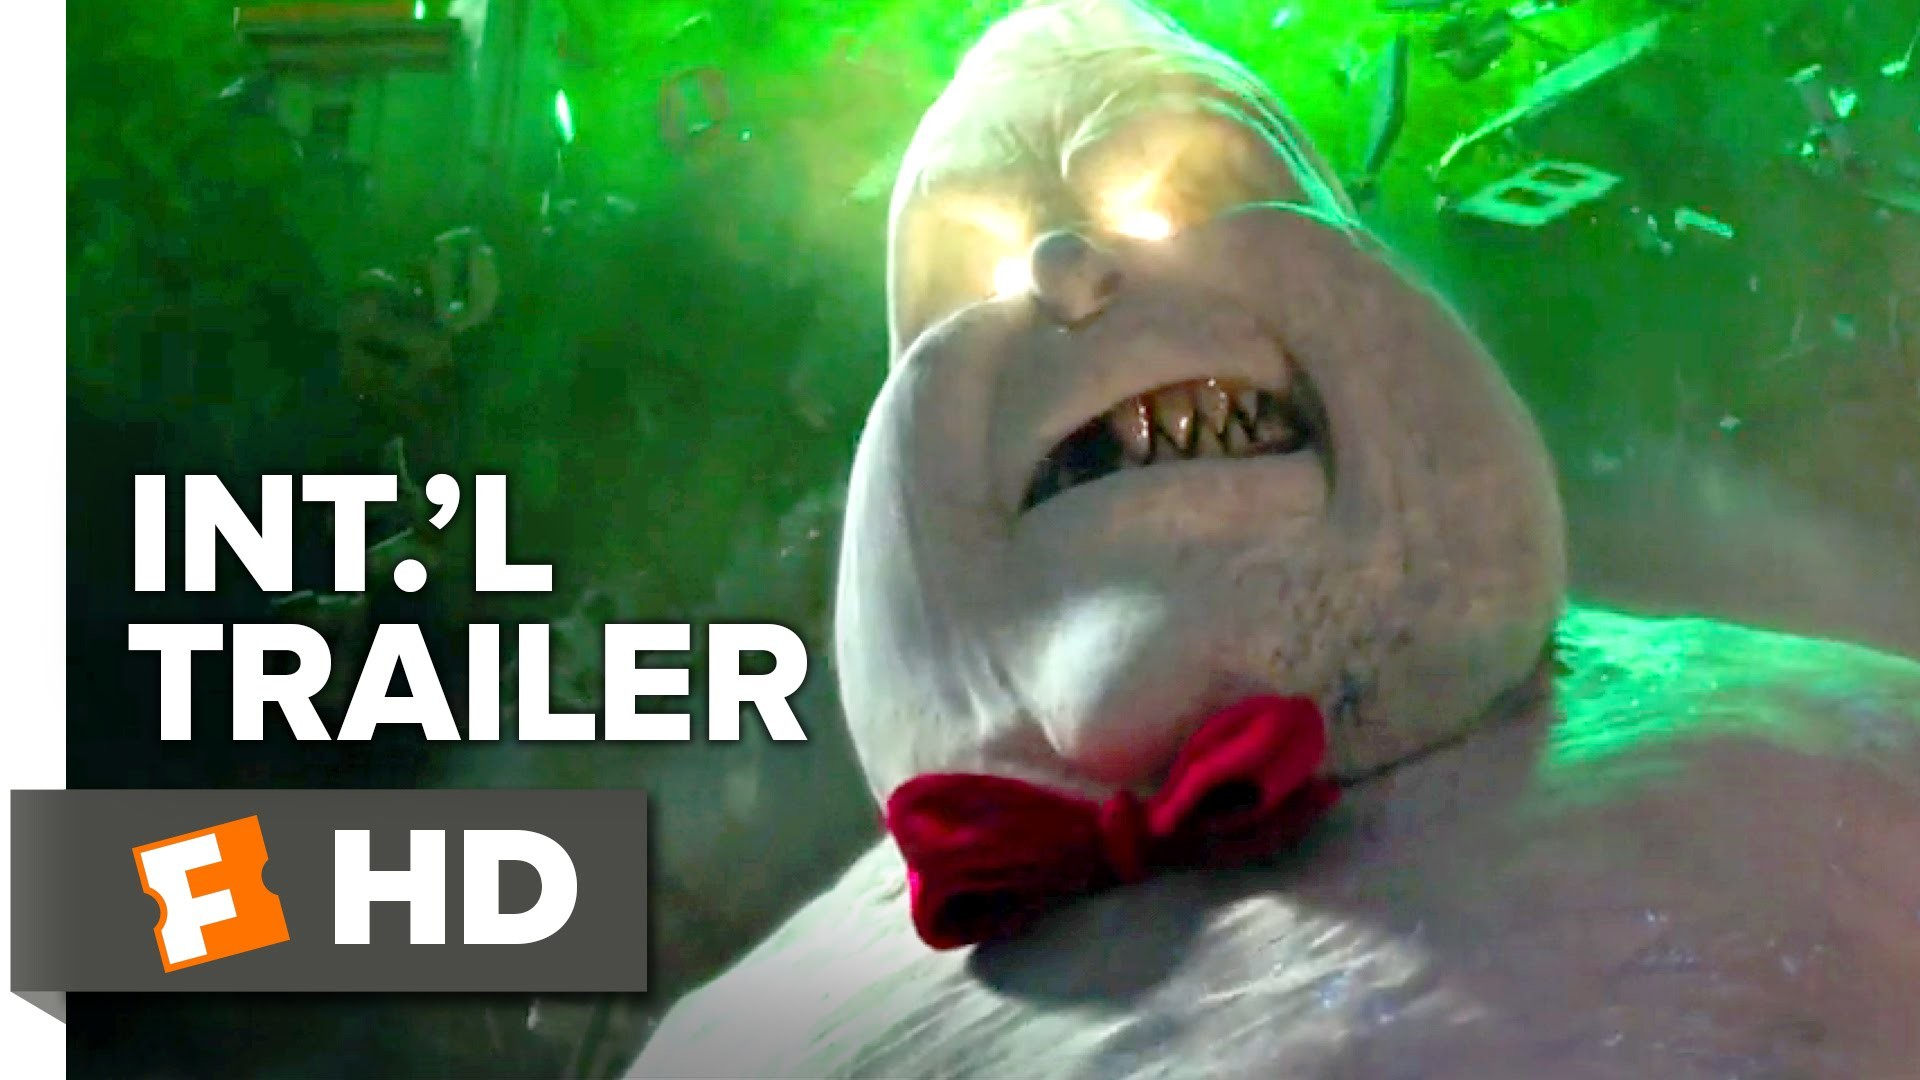 1920x1080 Ghostbusters Official International Trailer #2 (2016) - Kristen Wiig,  Melissa McCarthy Movie HD - YouTube